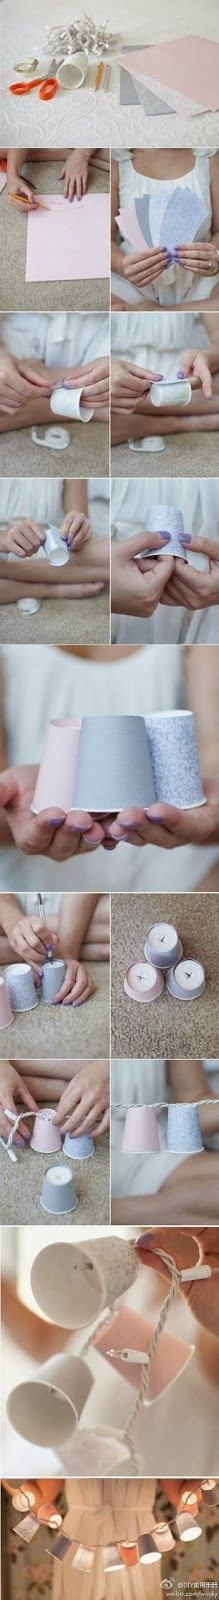 Today's Top 10 DIY: Make light shades with paper cups